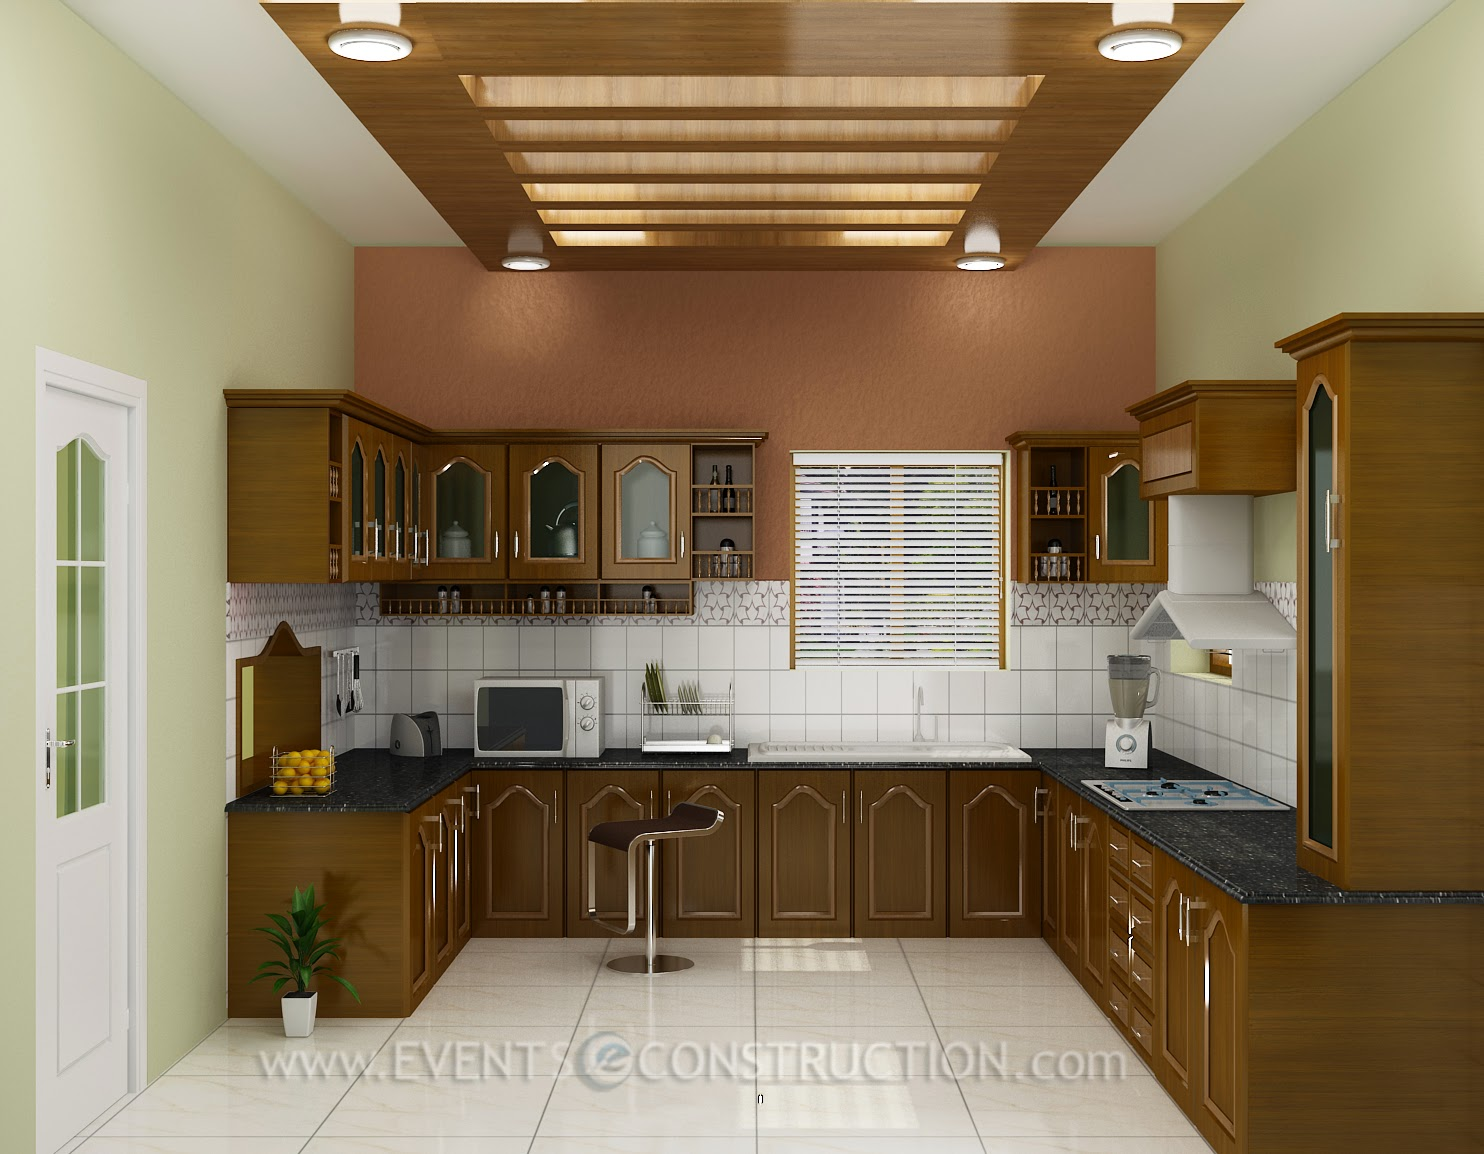 Evens construction pvt ltd kerala kitchen interior design for Kitchen design kerala